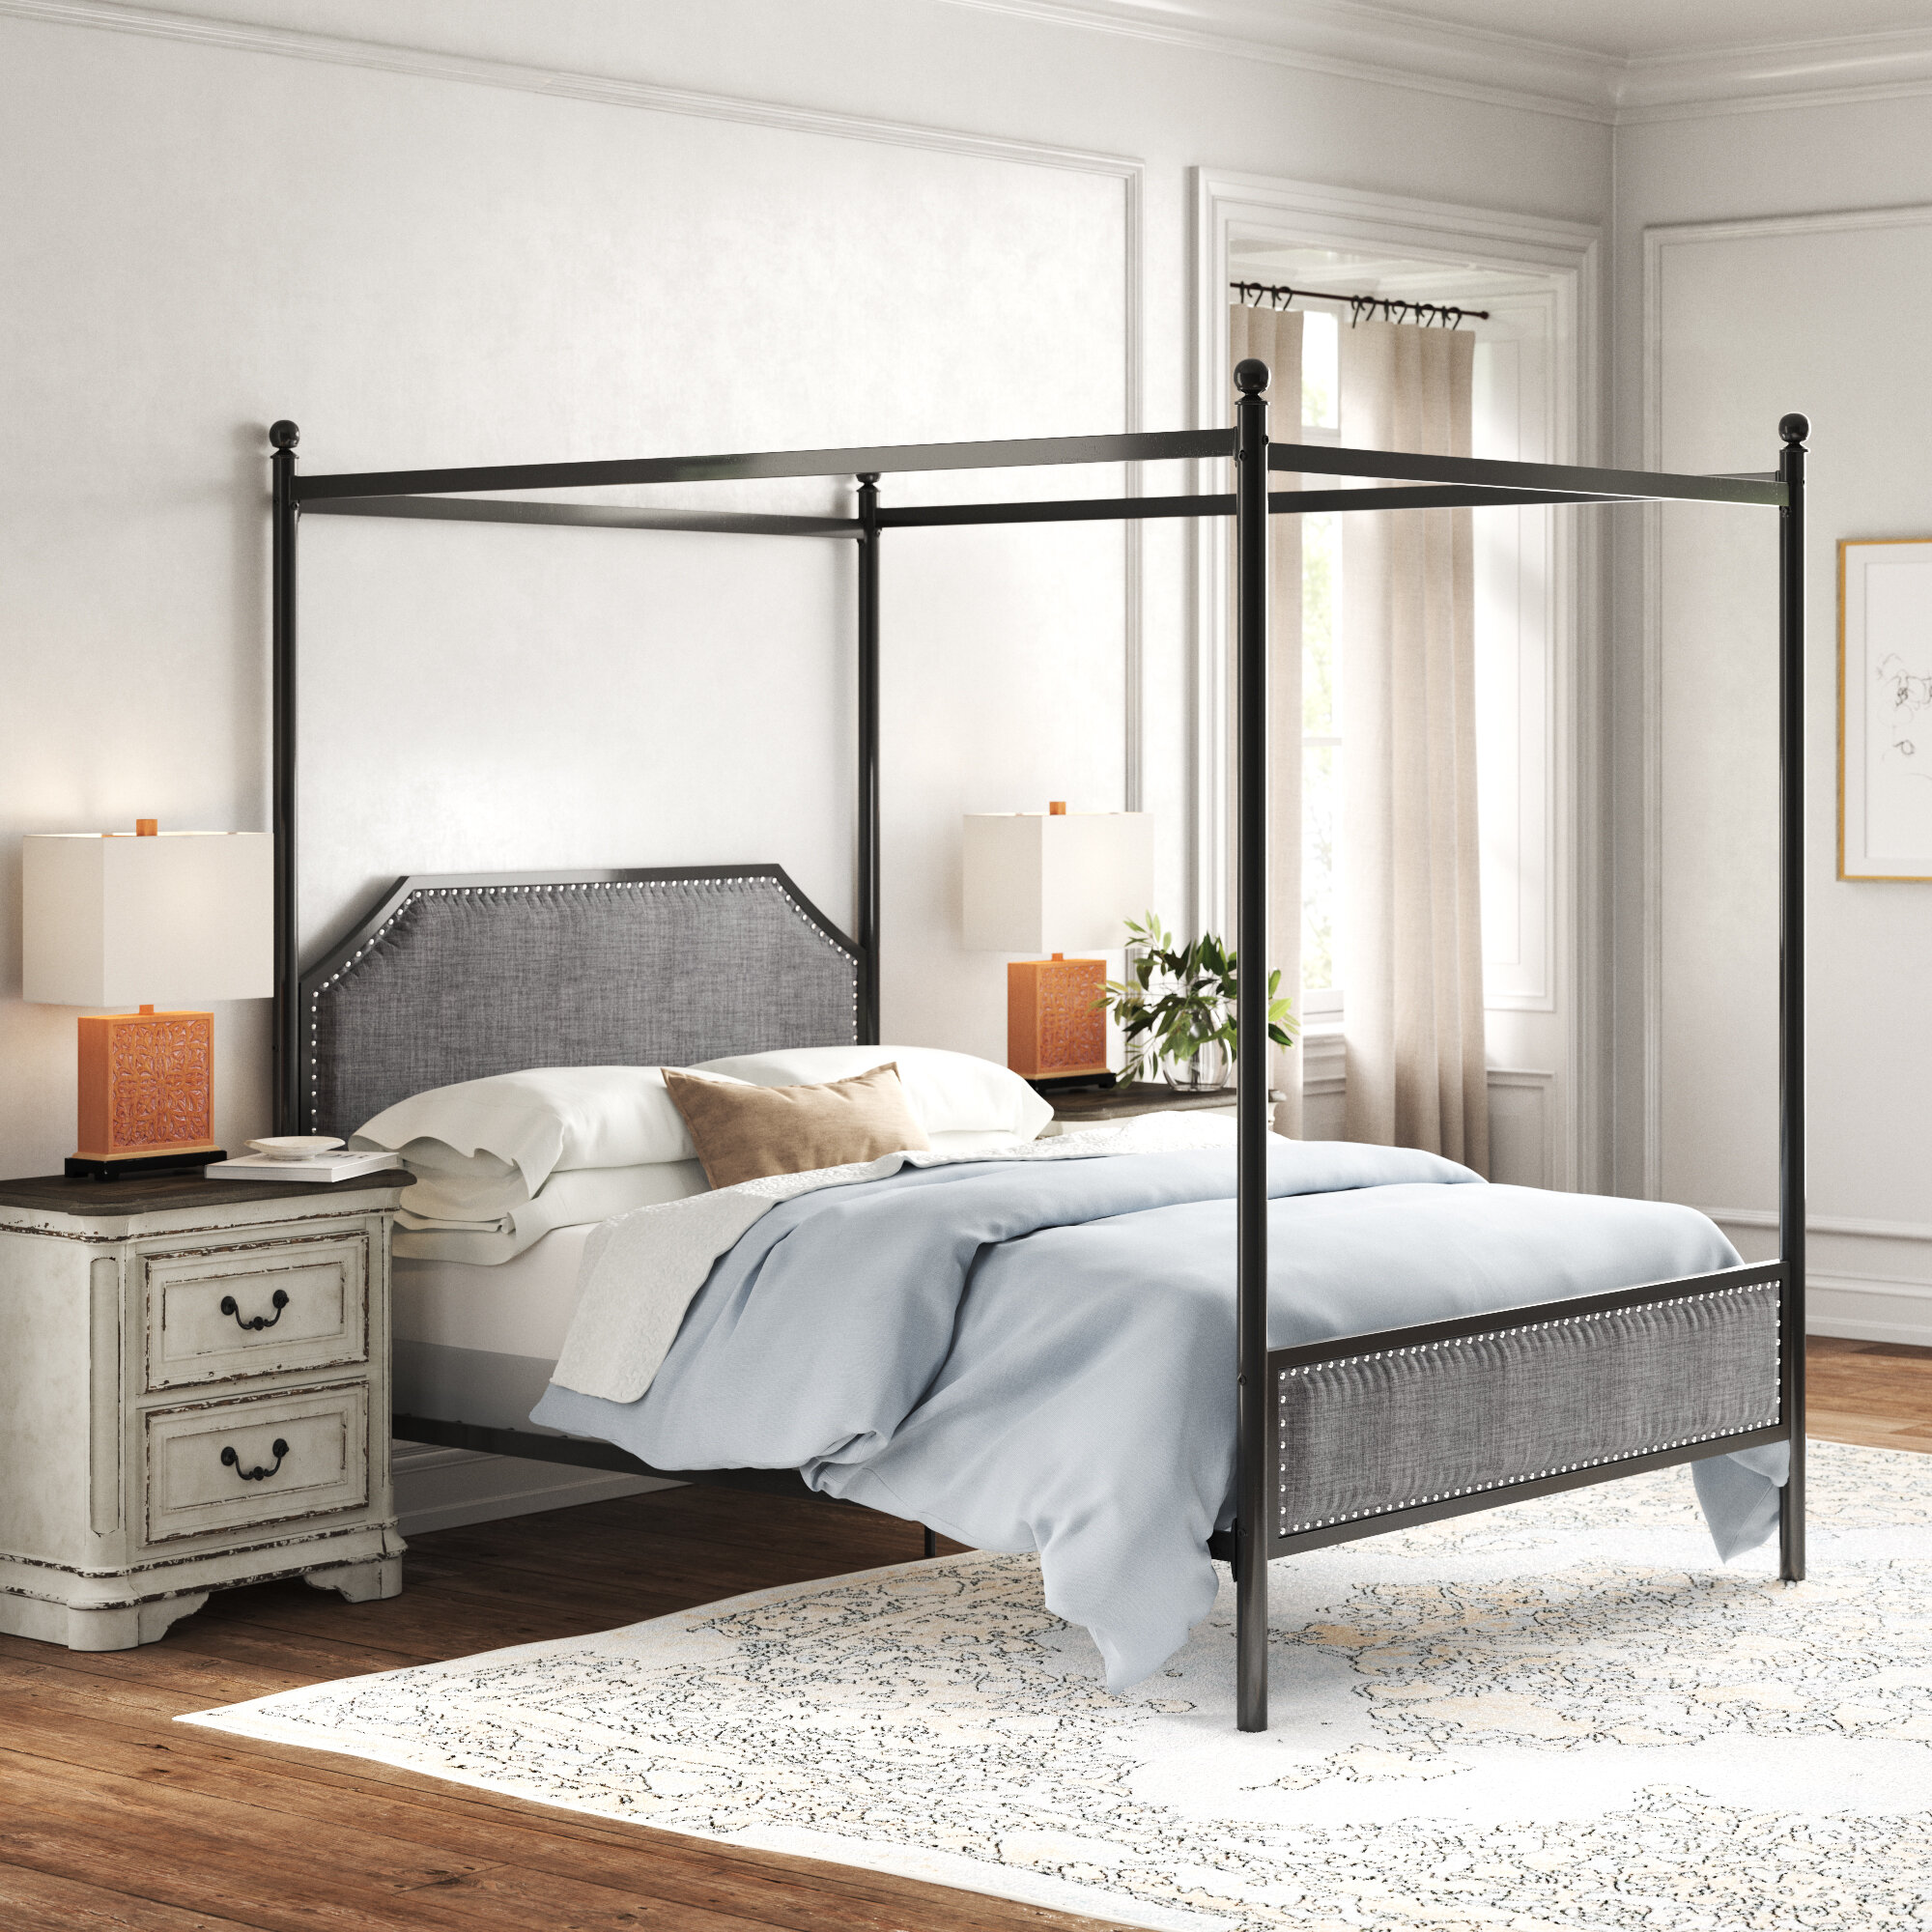 Kelly Clarkson Home Lina Metal Queen Canopy Bed Reviews Wayfair